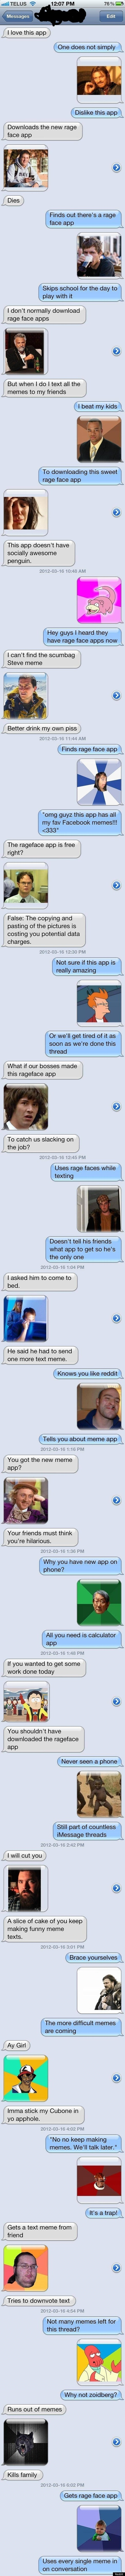 the ultimate meme texting conversation picture huffpost